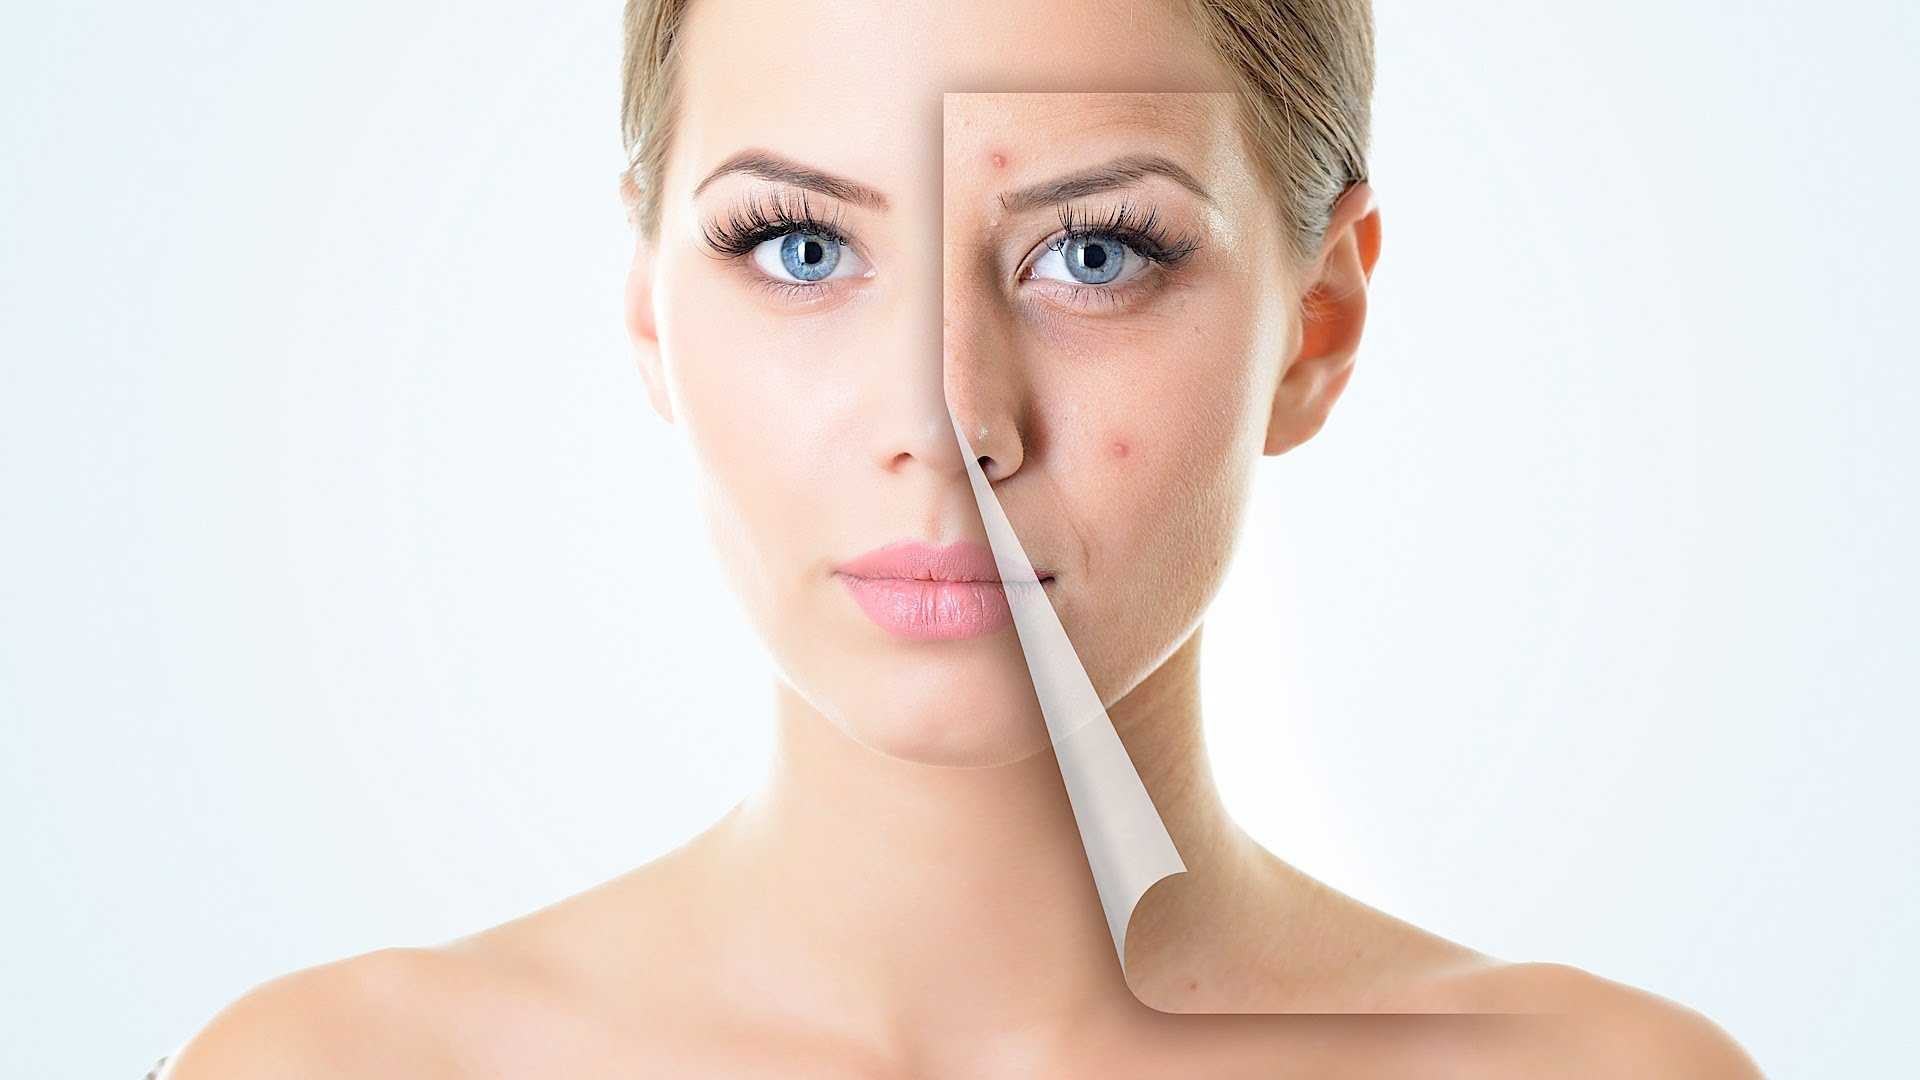 Acne Scaring Treatment